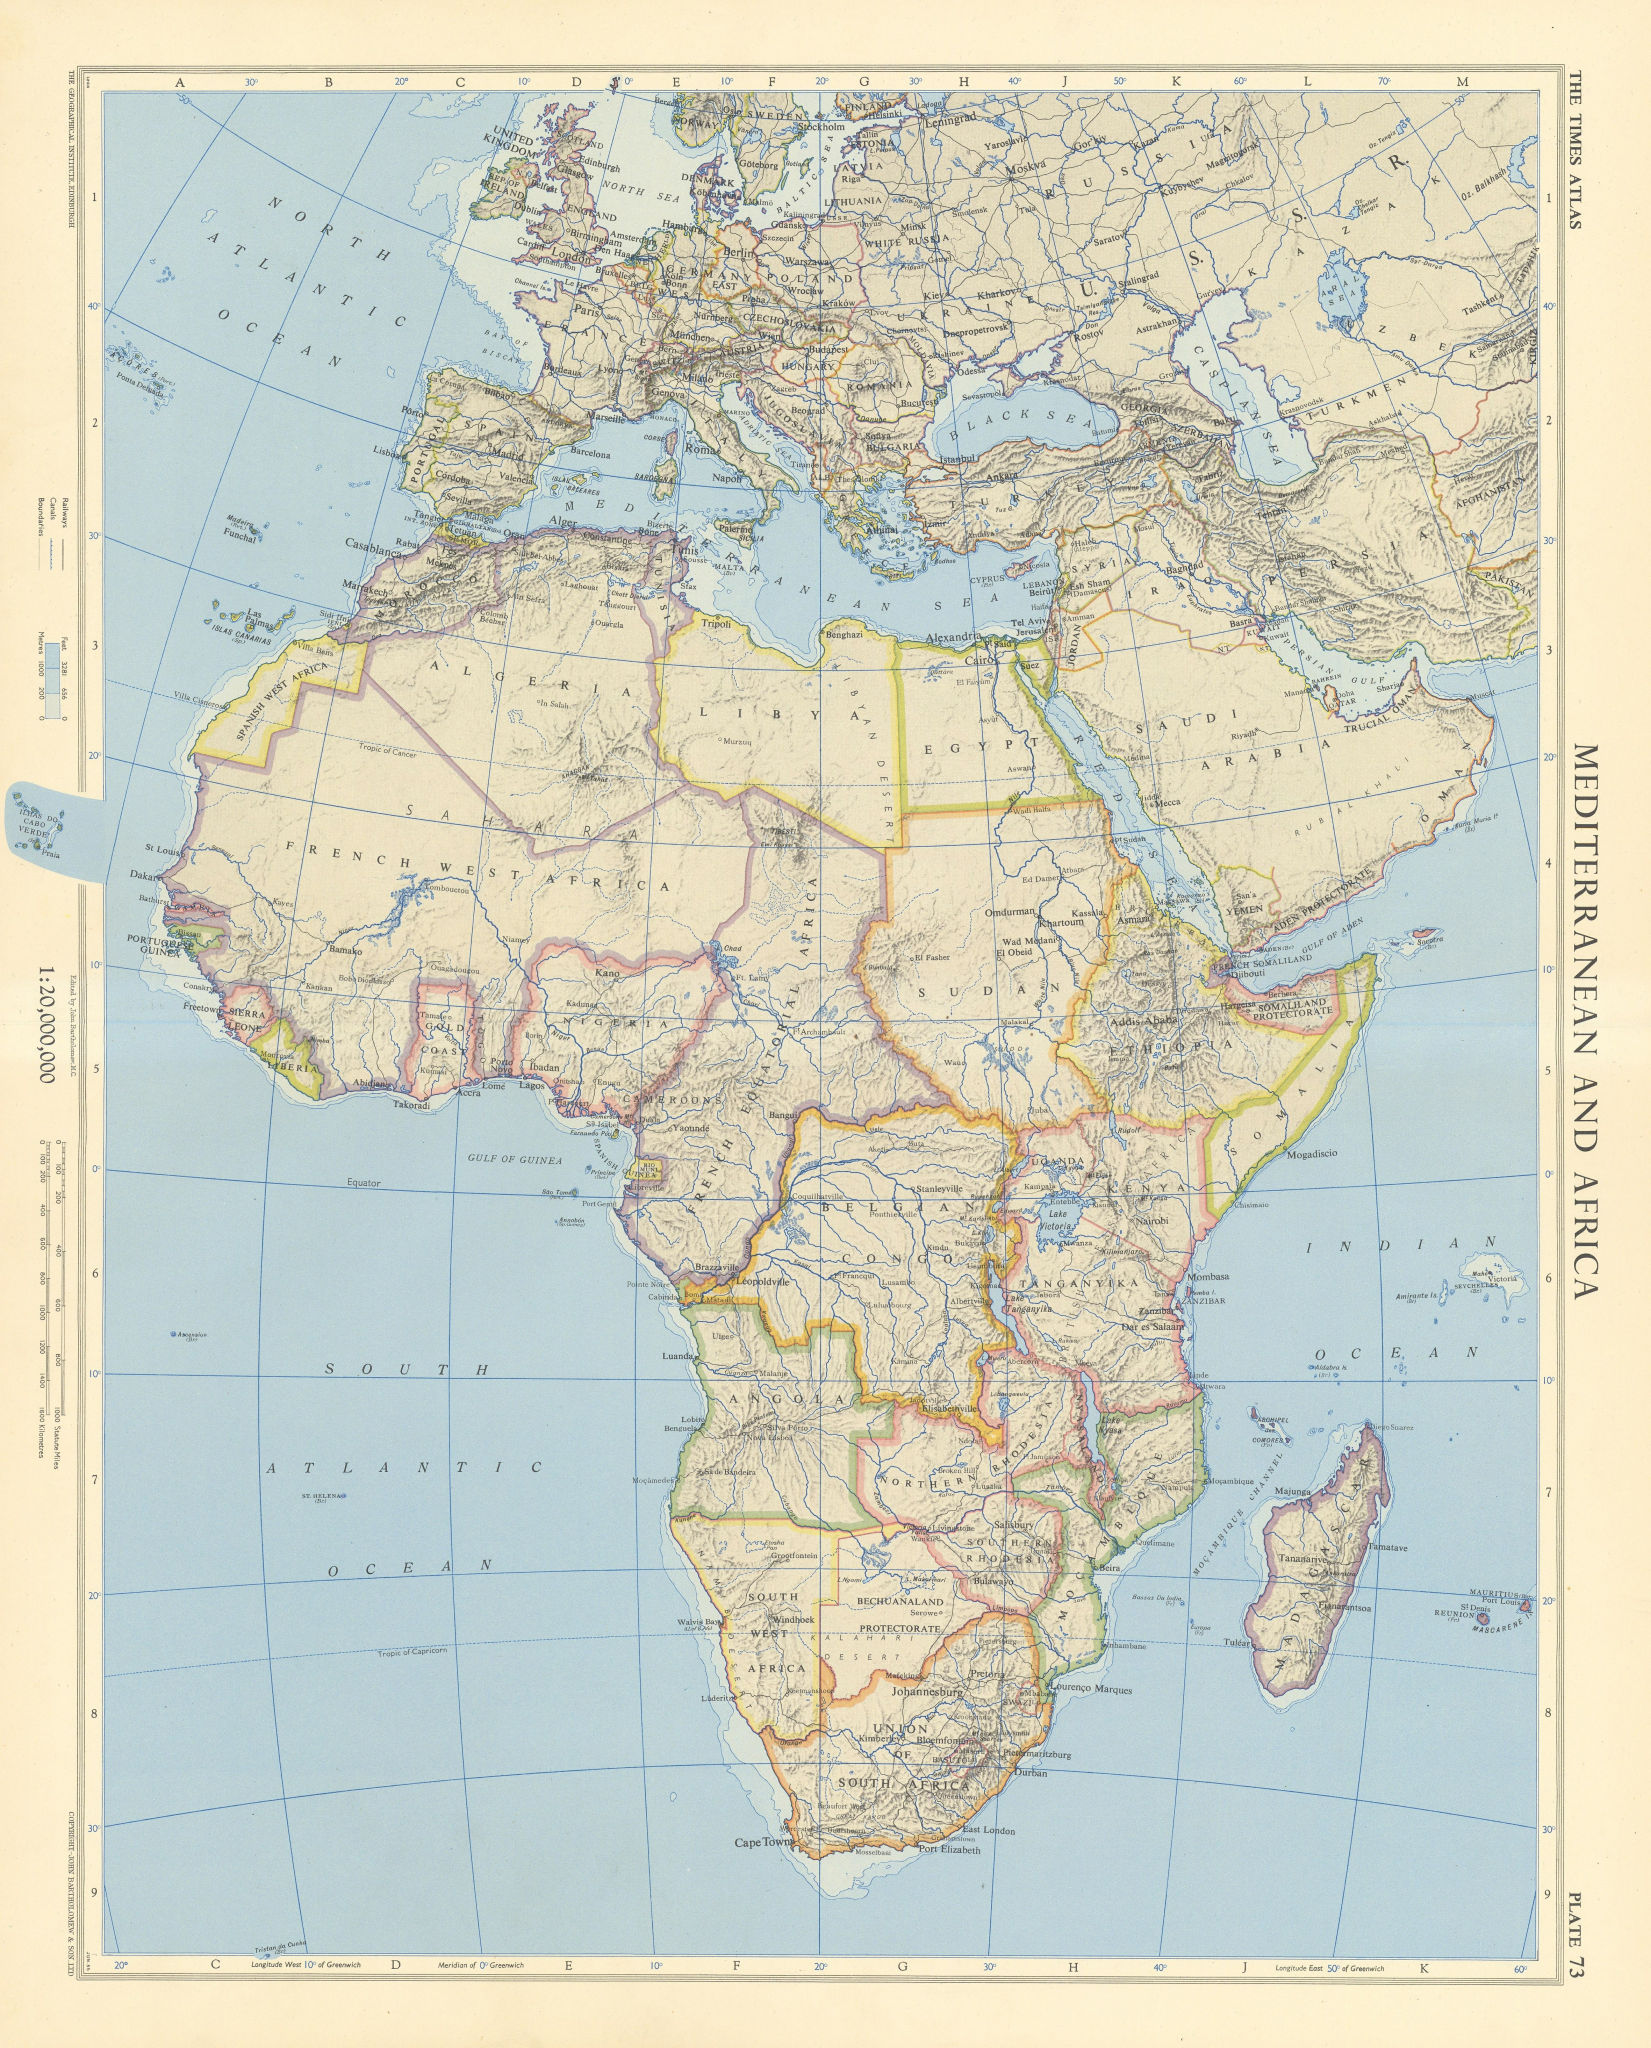 Africa. French Equatorial Africa. Rhodesia. Belgian Congo. TIMES 1956 old map